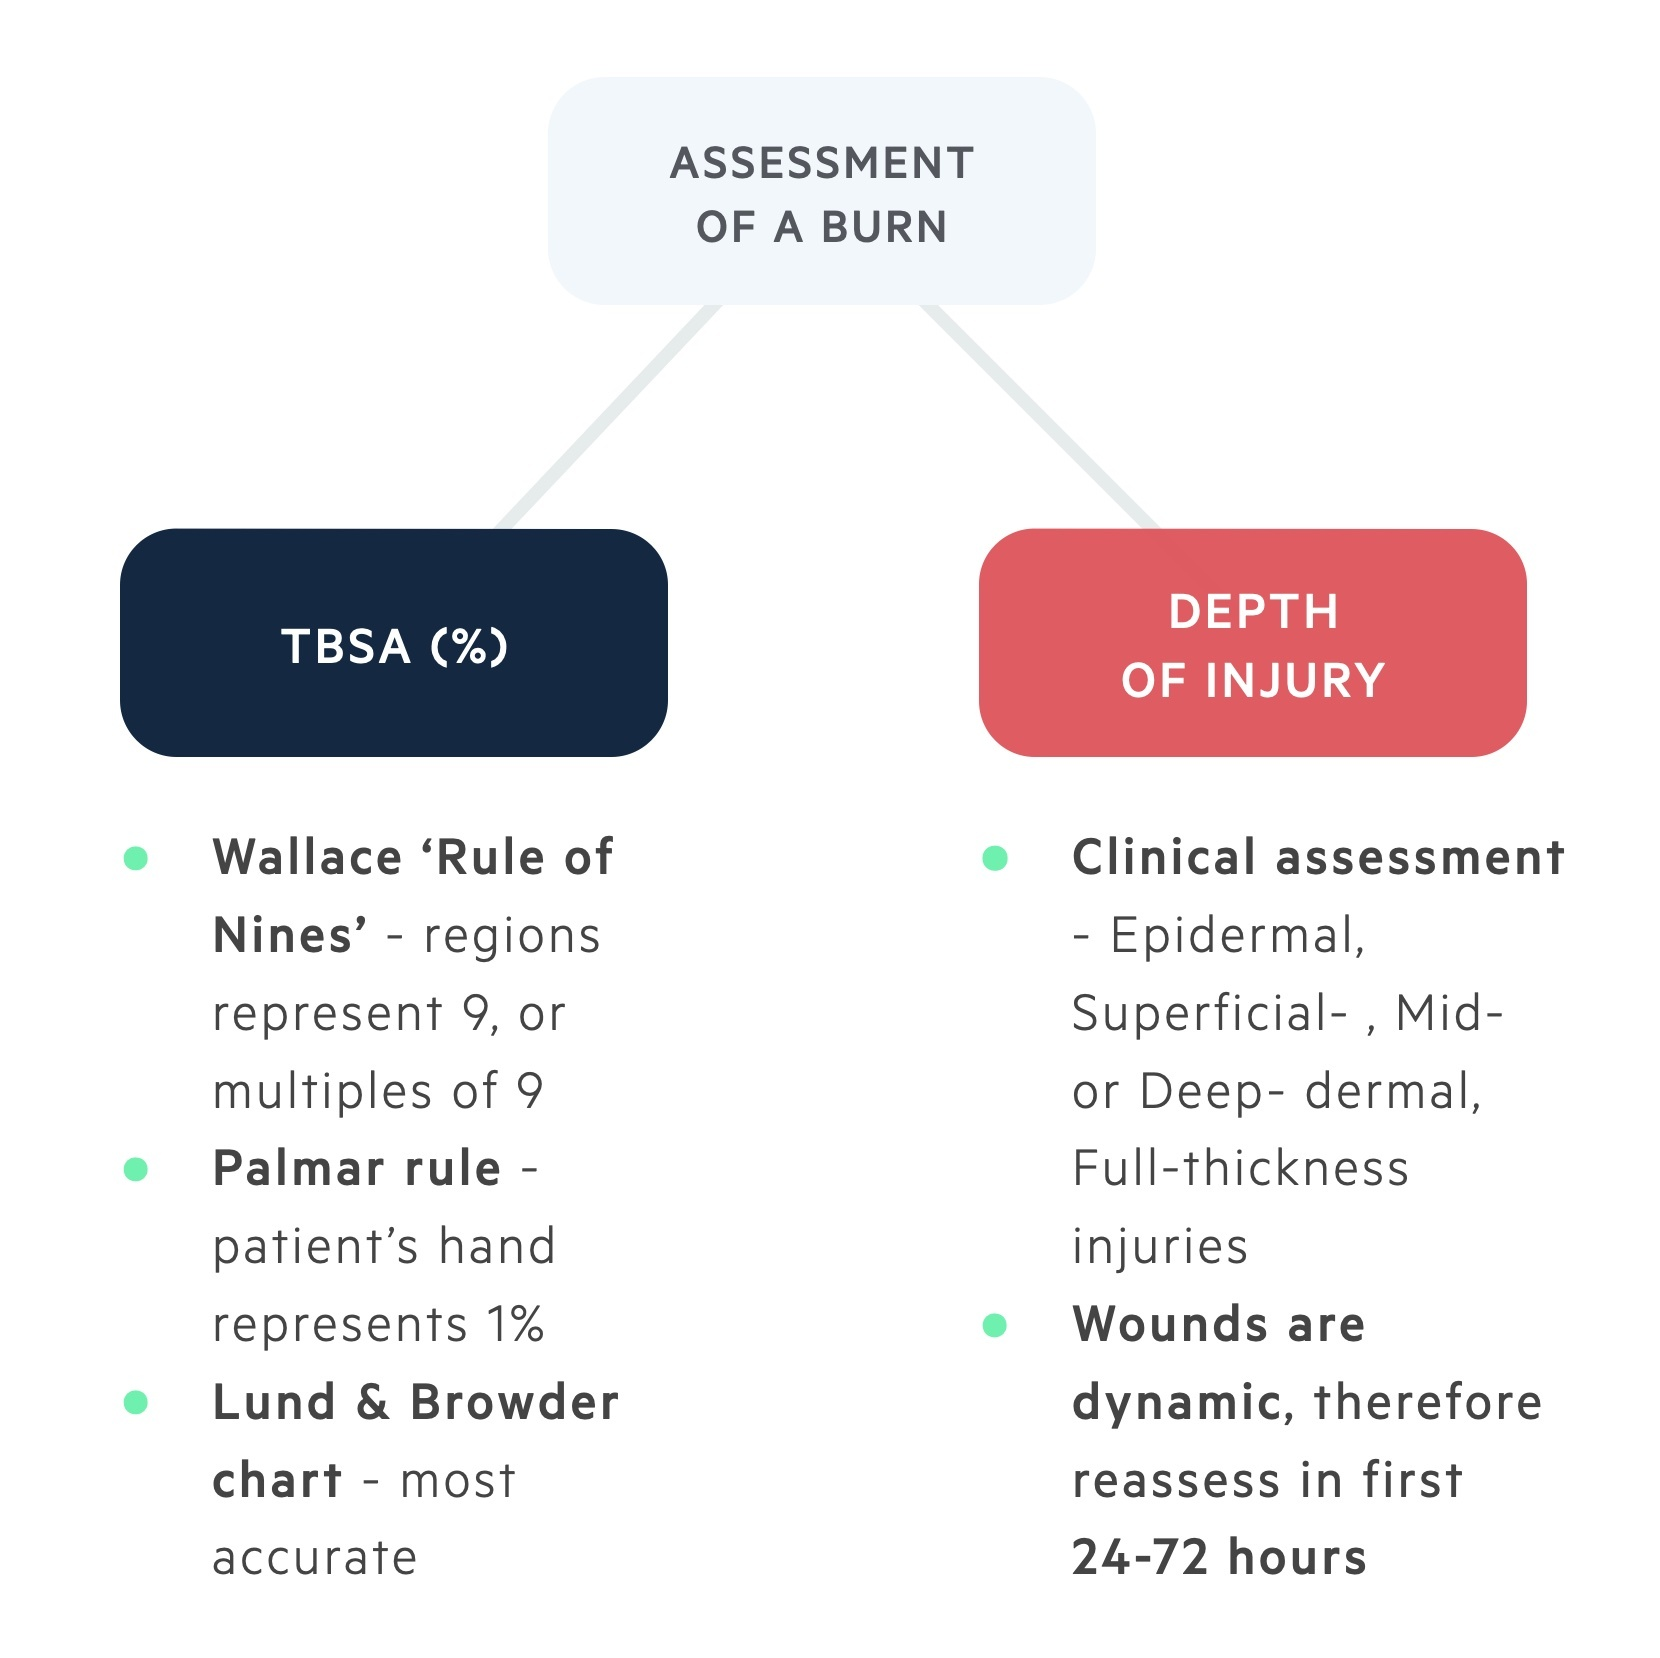 Assessment of a burn injury